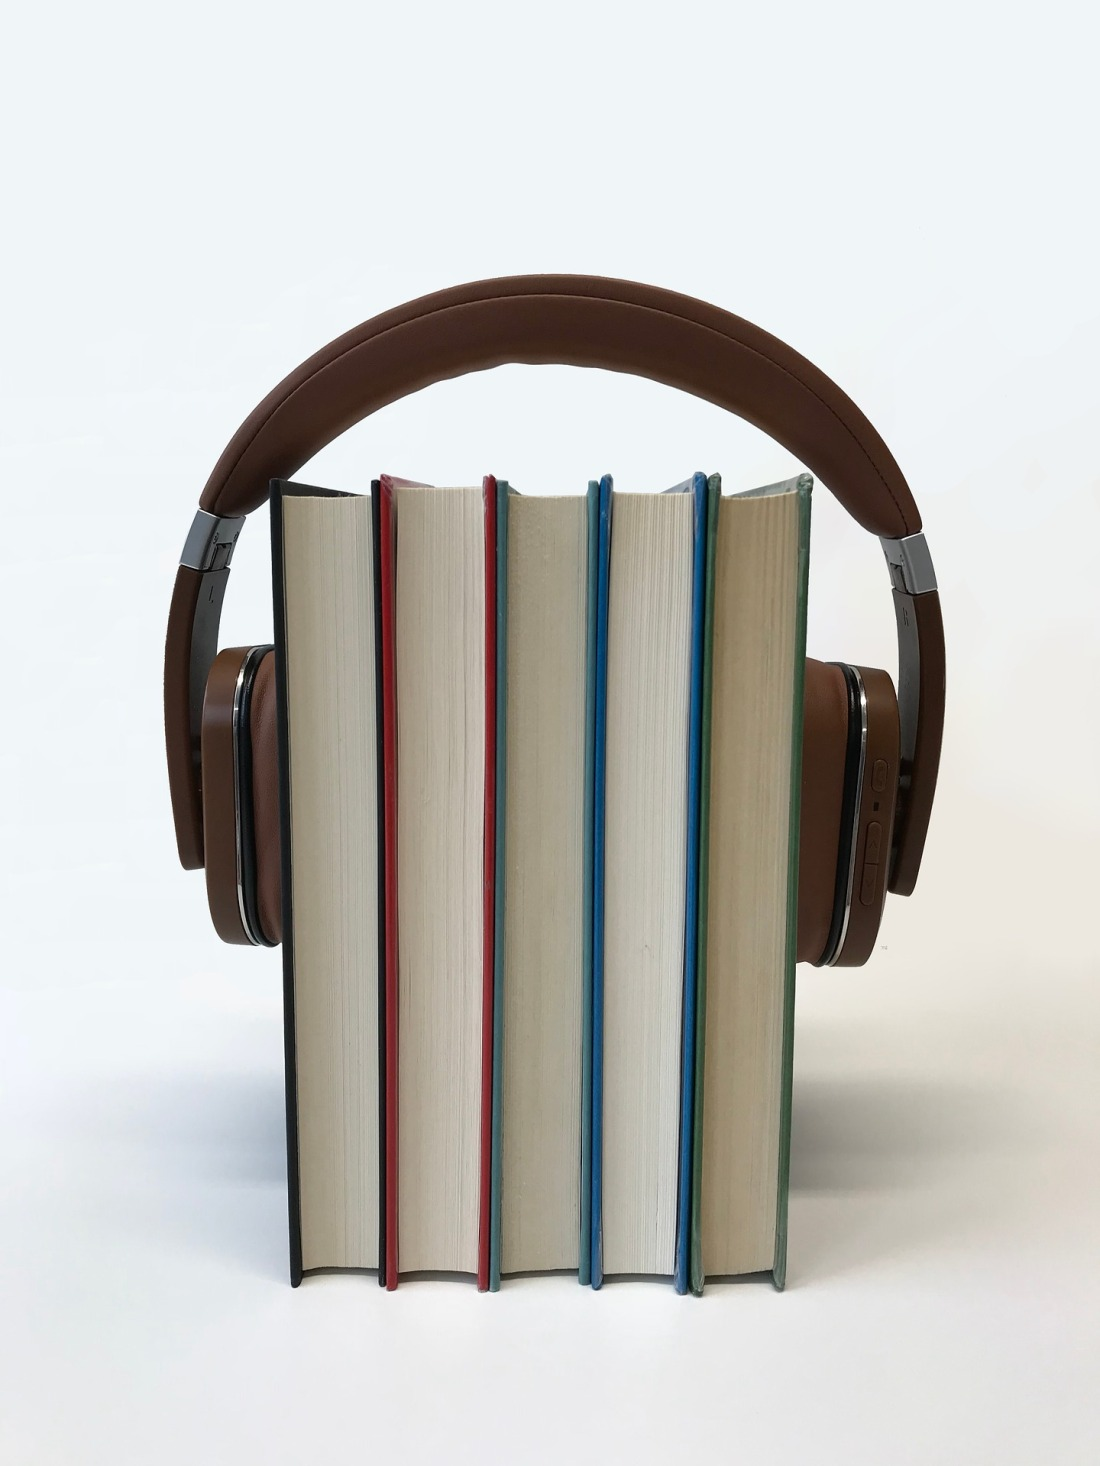 five books with a pair of headphones around them